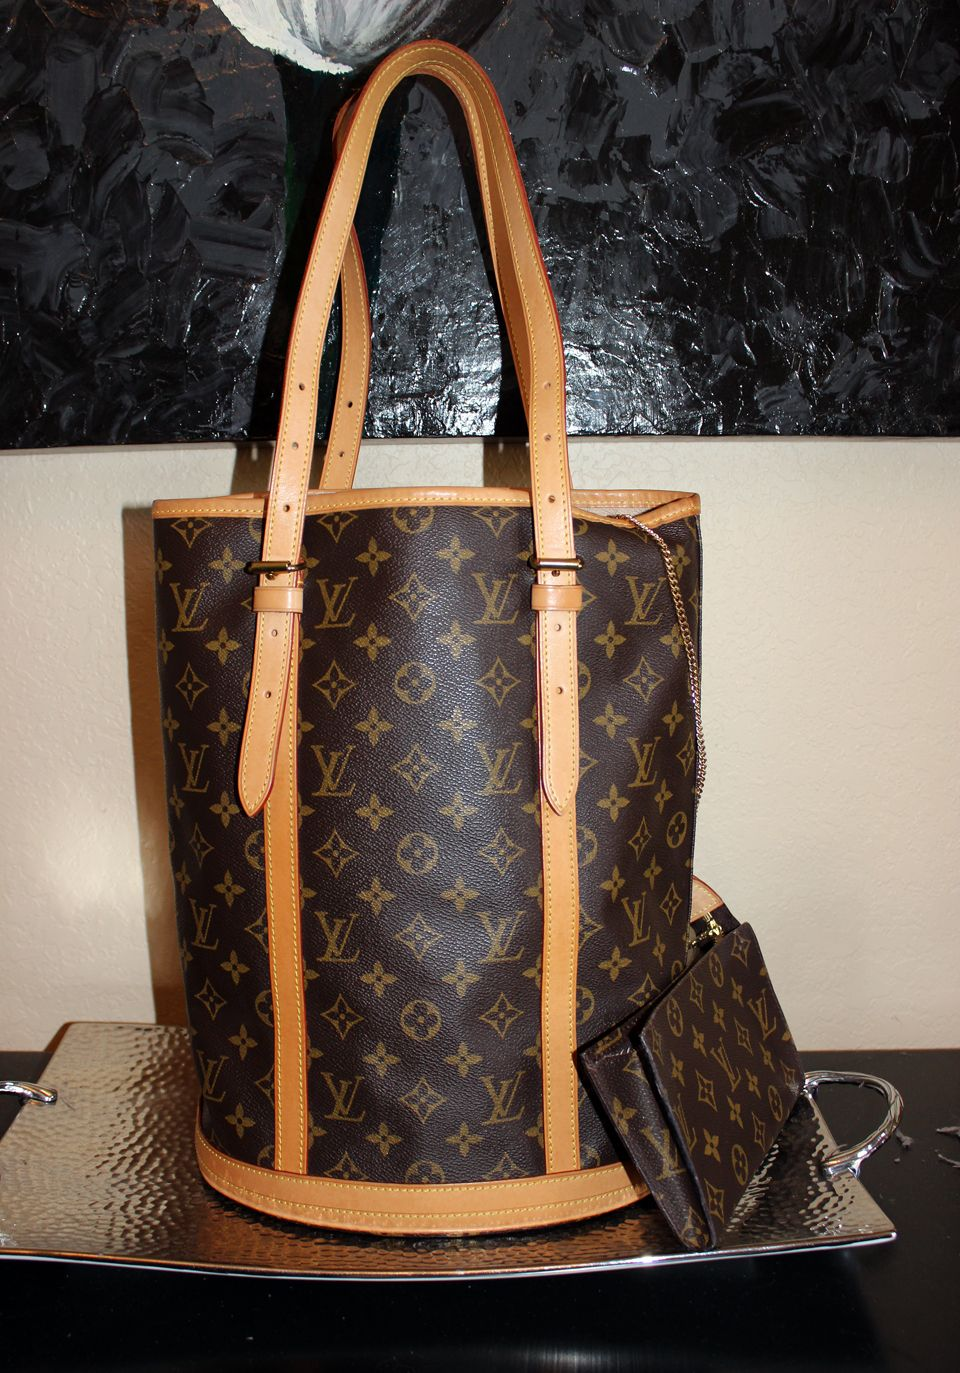 Louis Vuitton Monogram Bucket Bag With Pouch